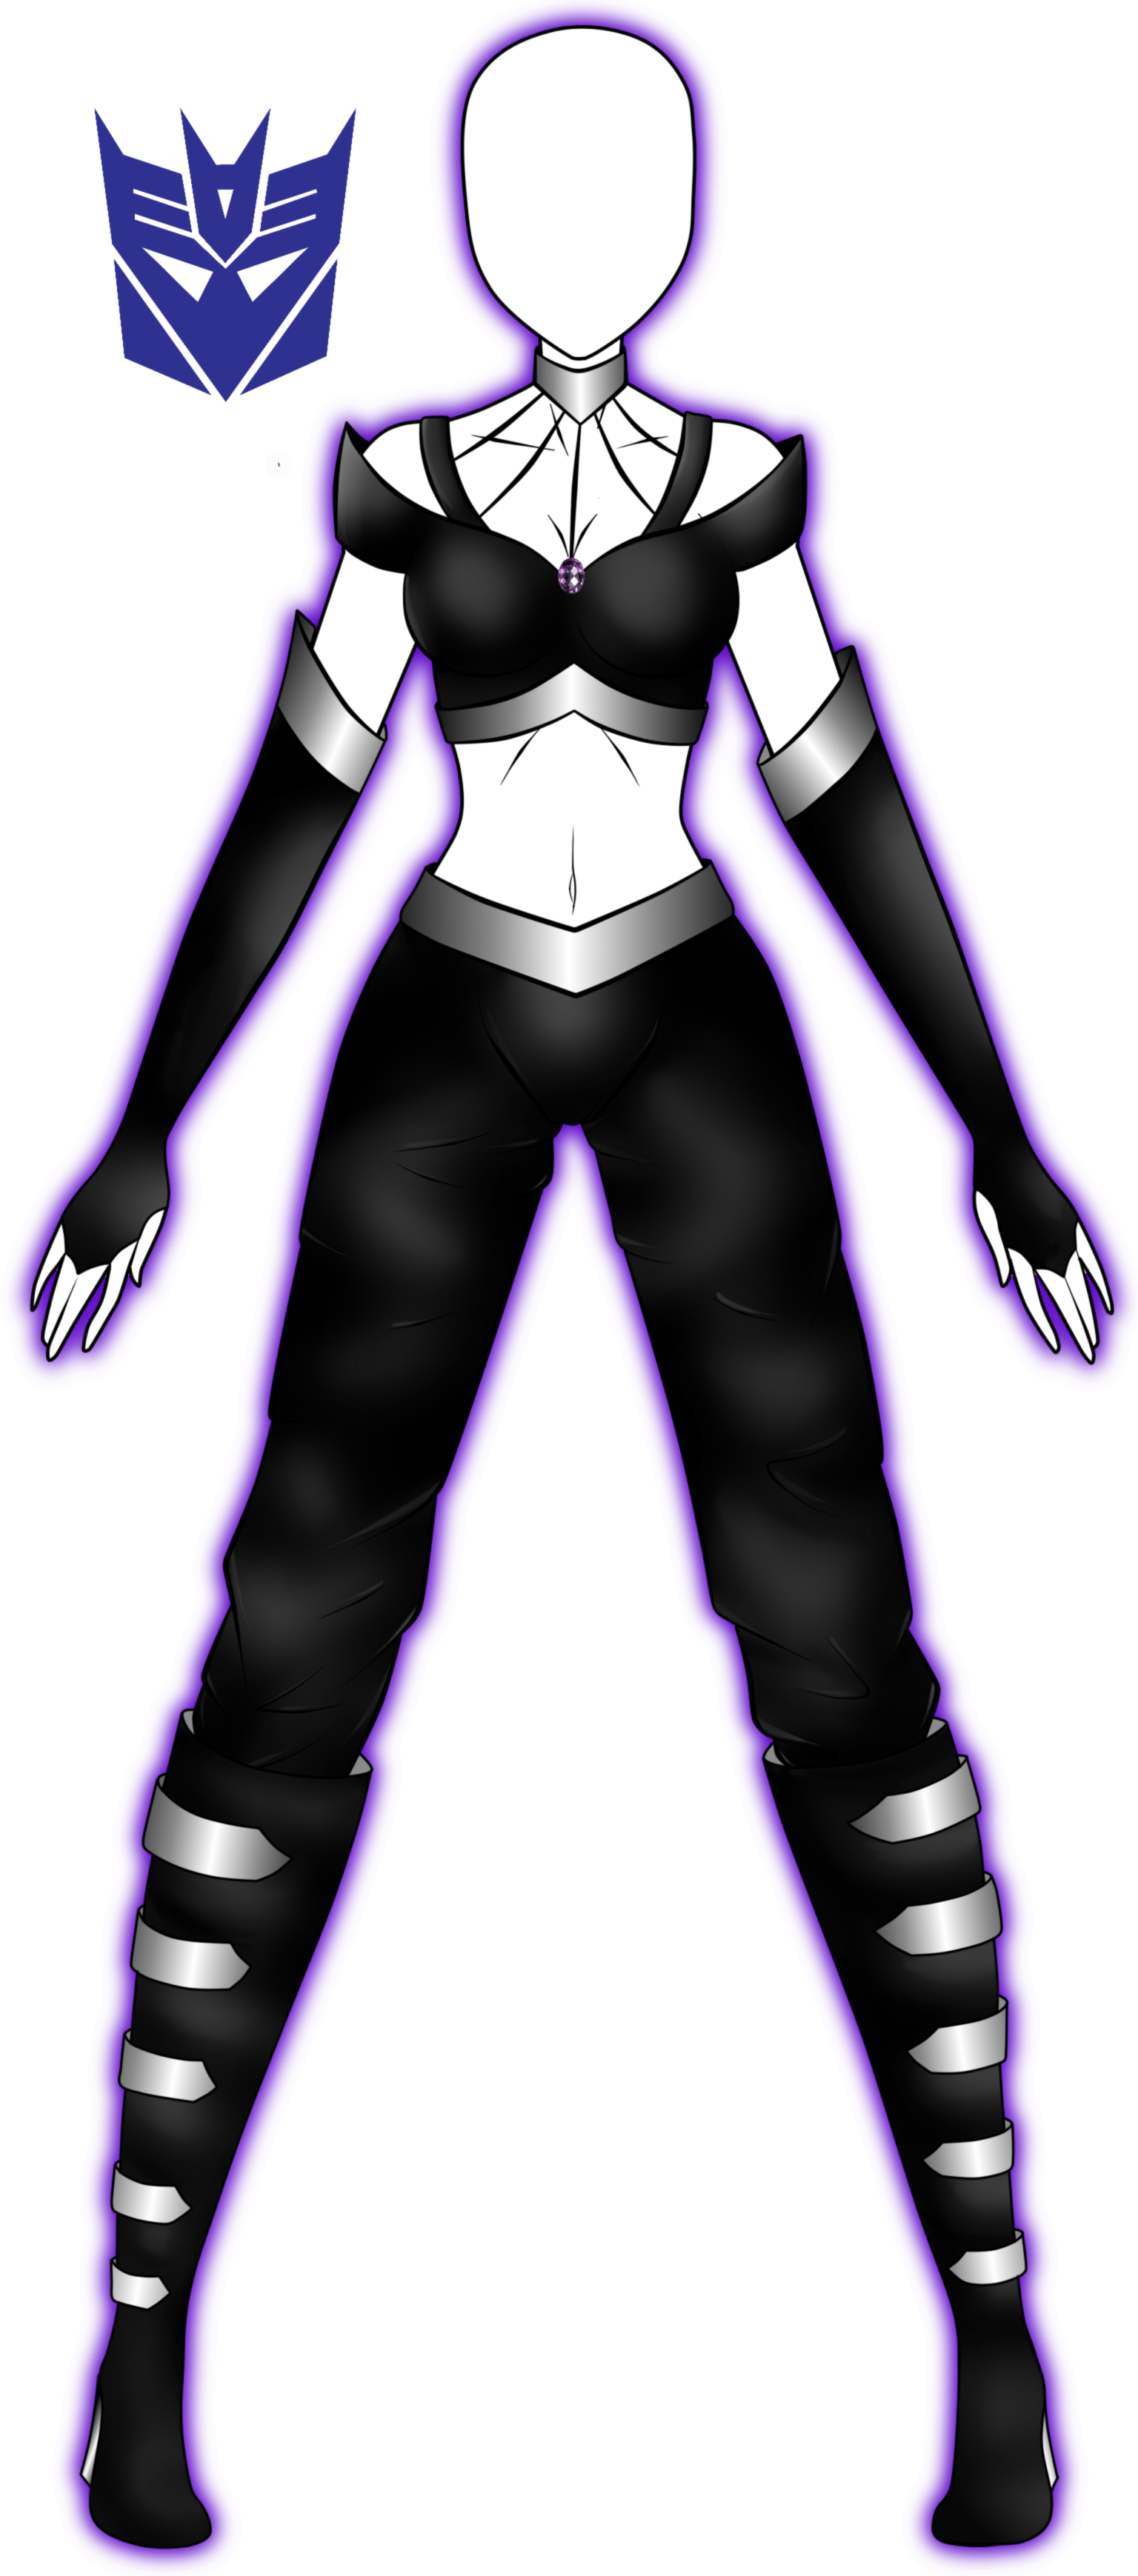 Old outfit revamp. by 2050 on DeviantArt